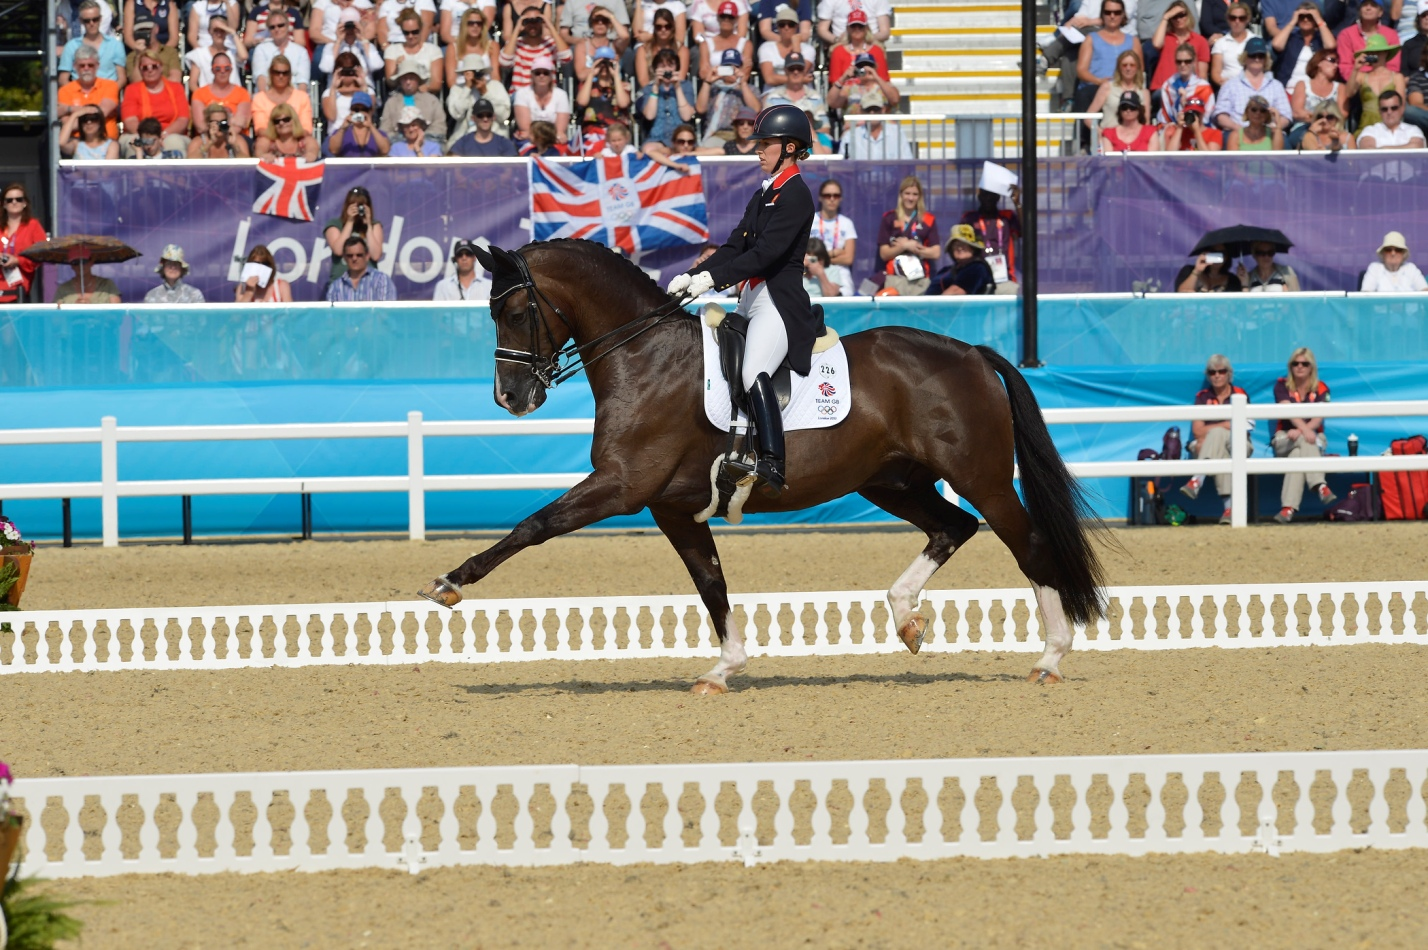 Charlotte Dujardin and Valegro London 2012 Kit Houghton